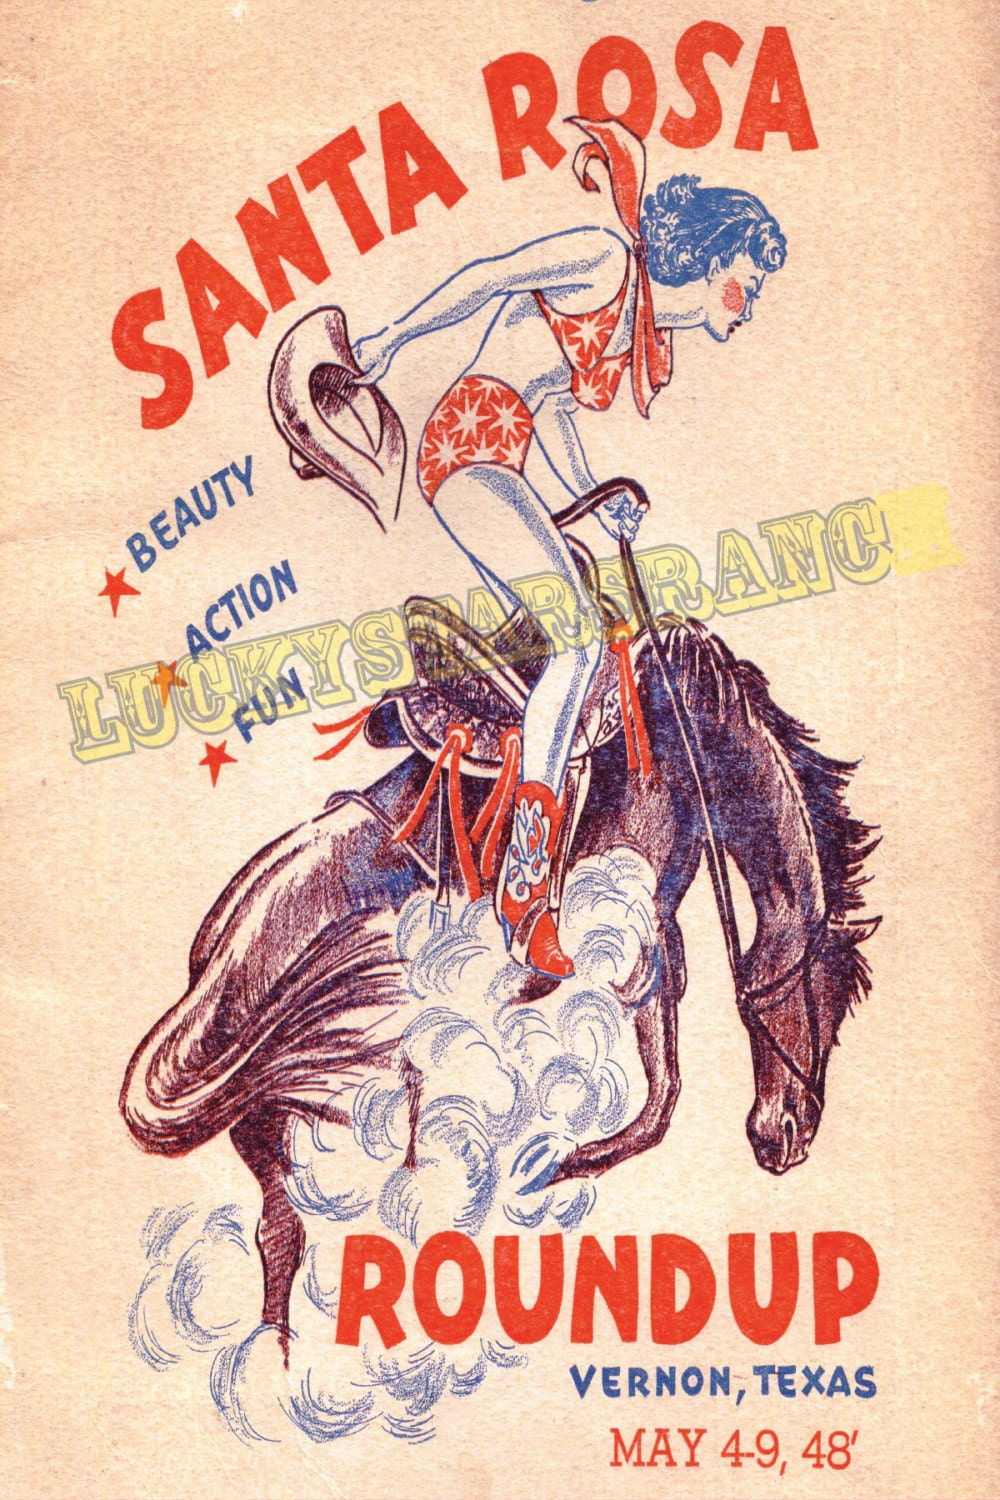 Cowgirl Poster Santa Rosa Round Up Texas Vintage Rodeo Print